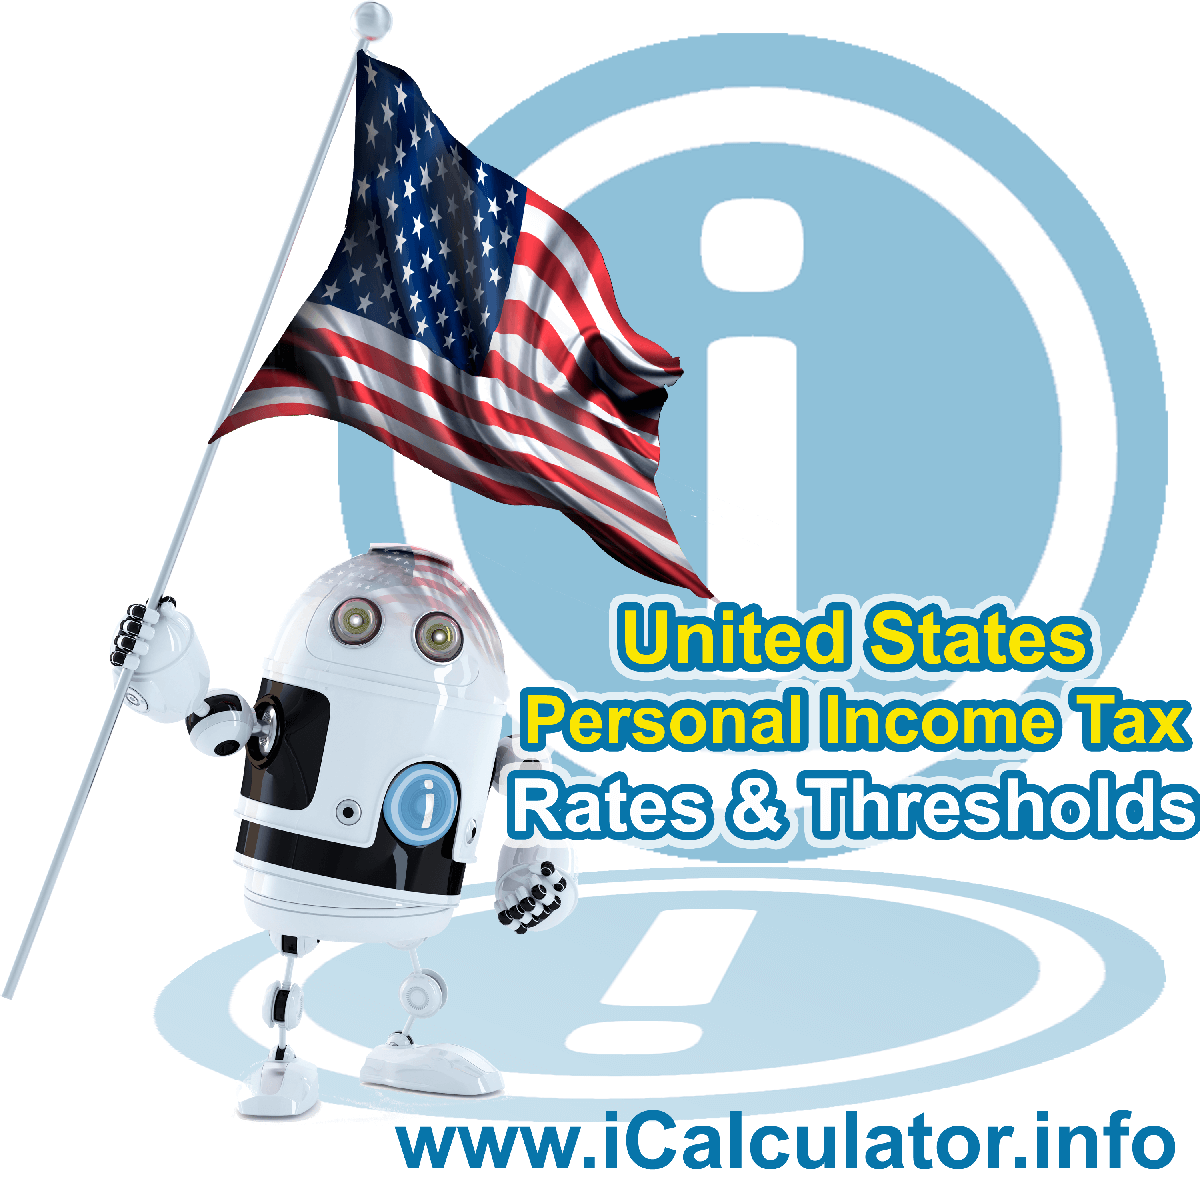 US Tax Tables. This image provides details of the United States Tax Tables and tax tables for each State in the USA for 2020. The US Tax Tables are provided in support of the US Tax Calculator published on iCalculator so that you can review the individual allowances, rates and tax credits used to calculate your tax return.